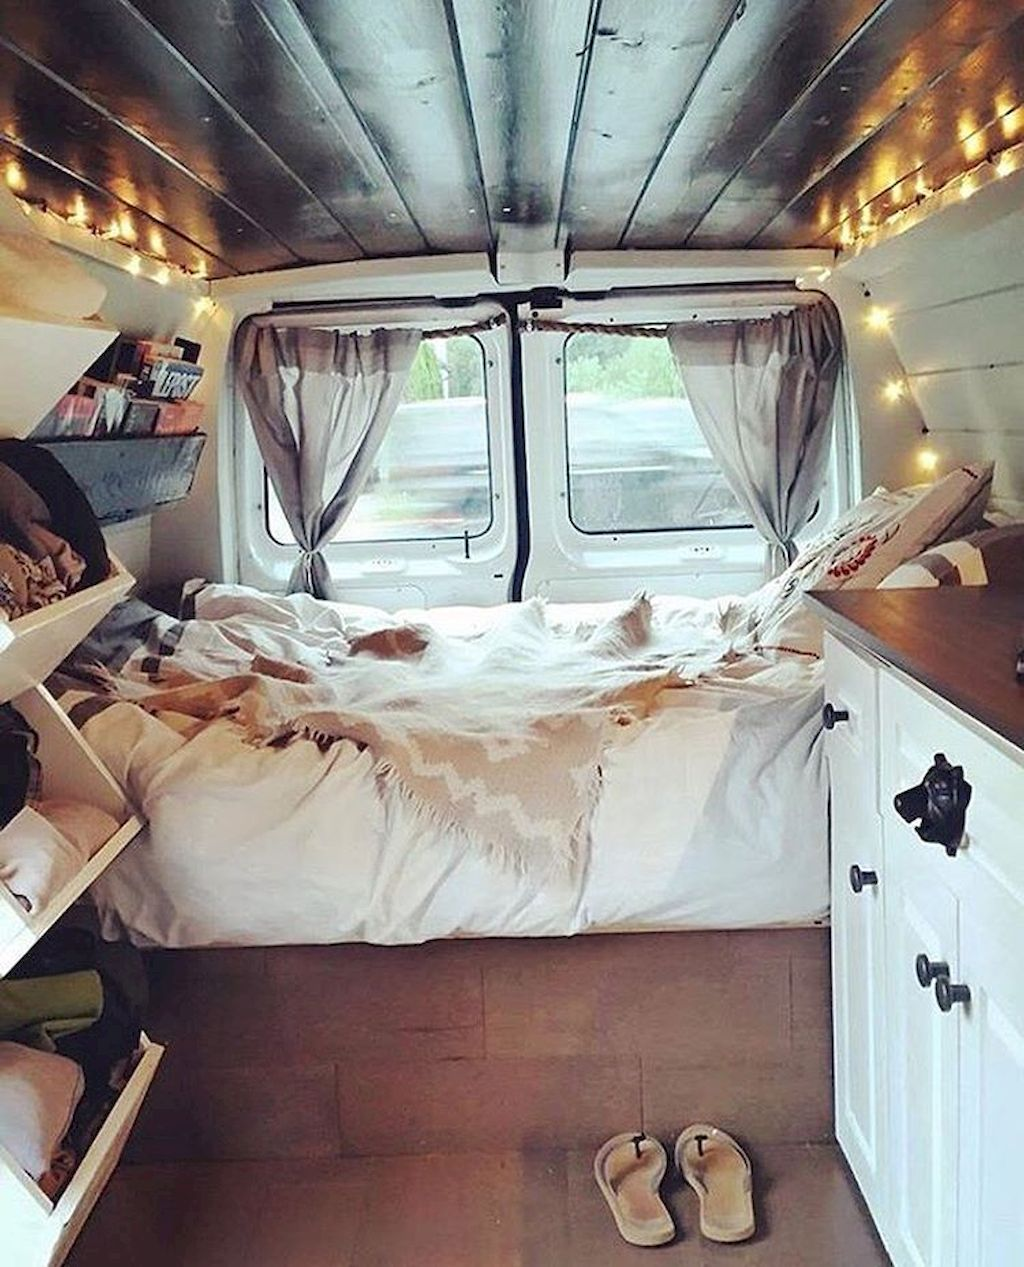 75 camper van interior design and organization ideas van interior rh pinterest com van hus interior design review van hus interior design